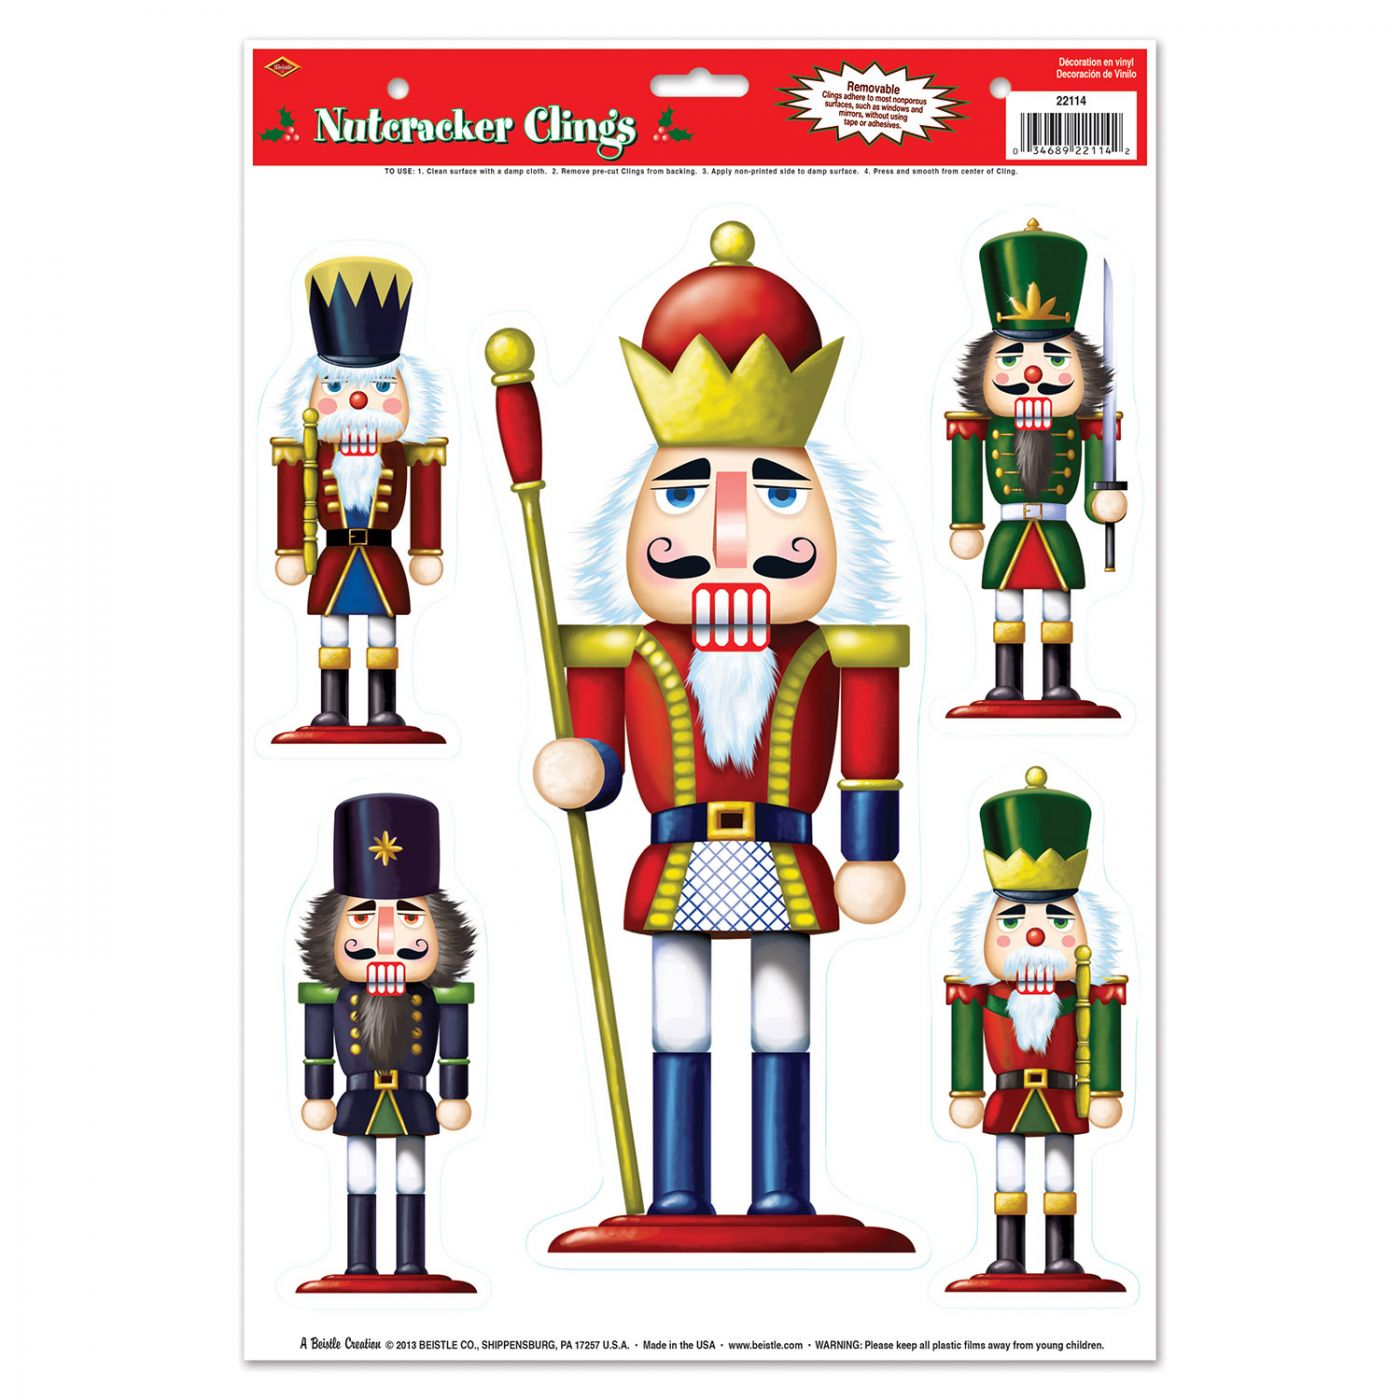 Nutcracker Clings image